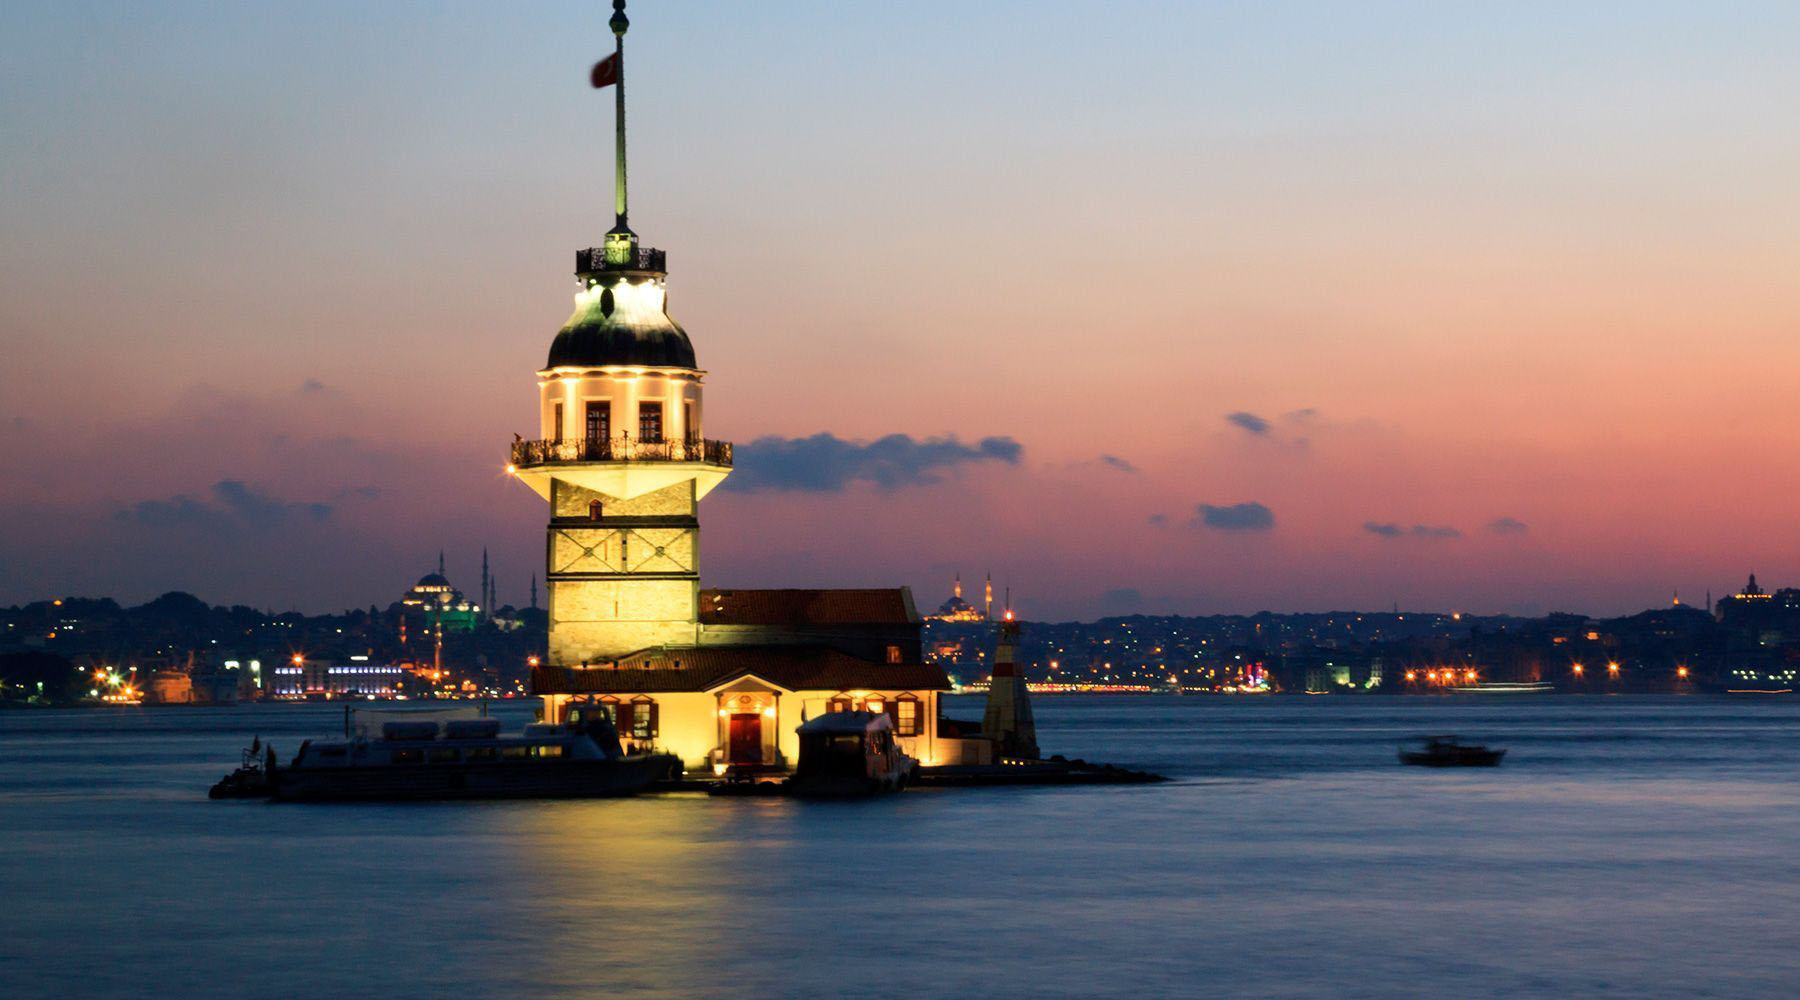 Bosphorus Strait (Cruising)